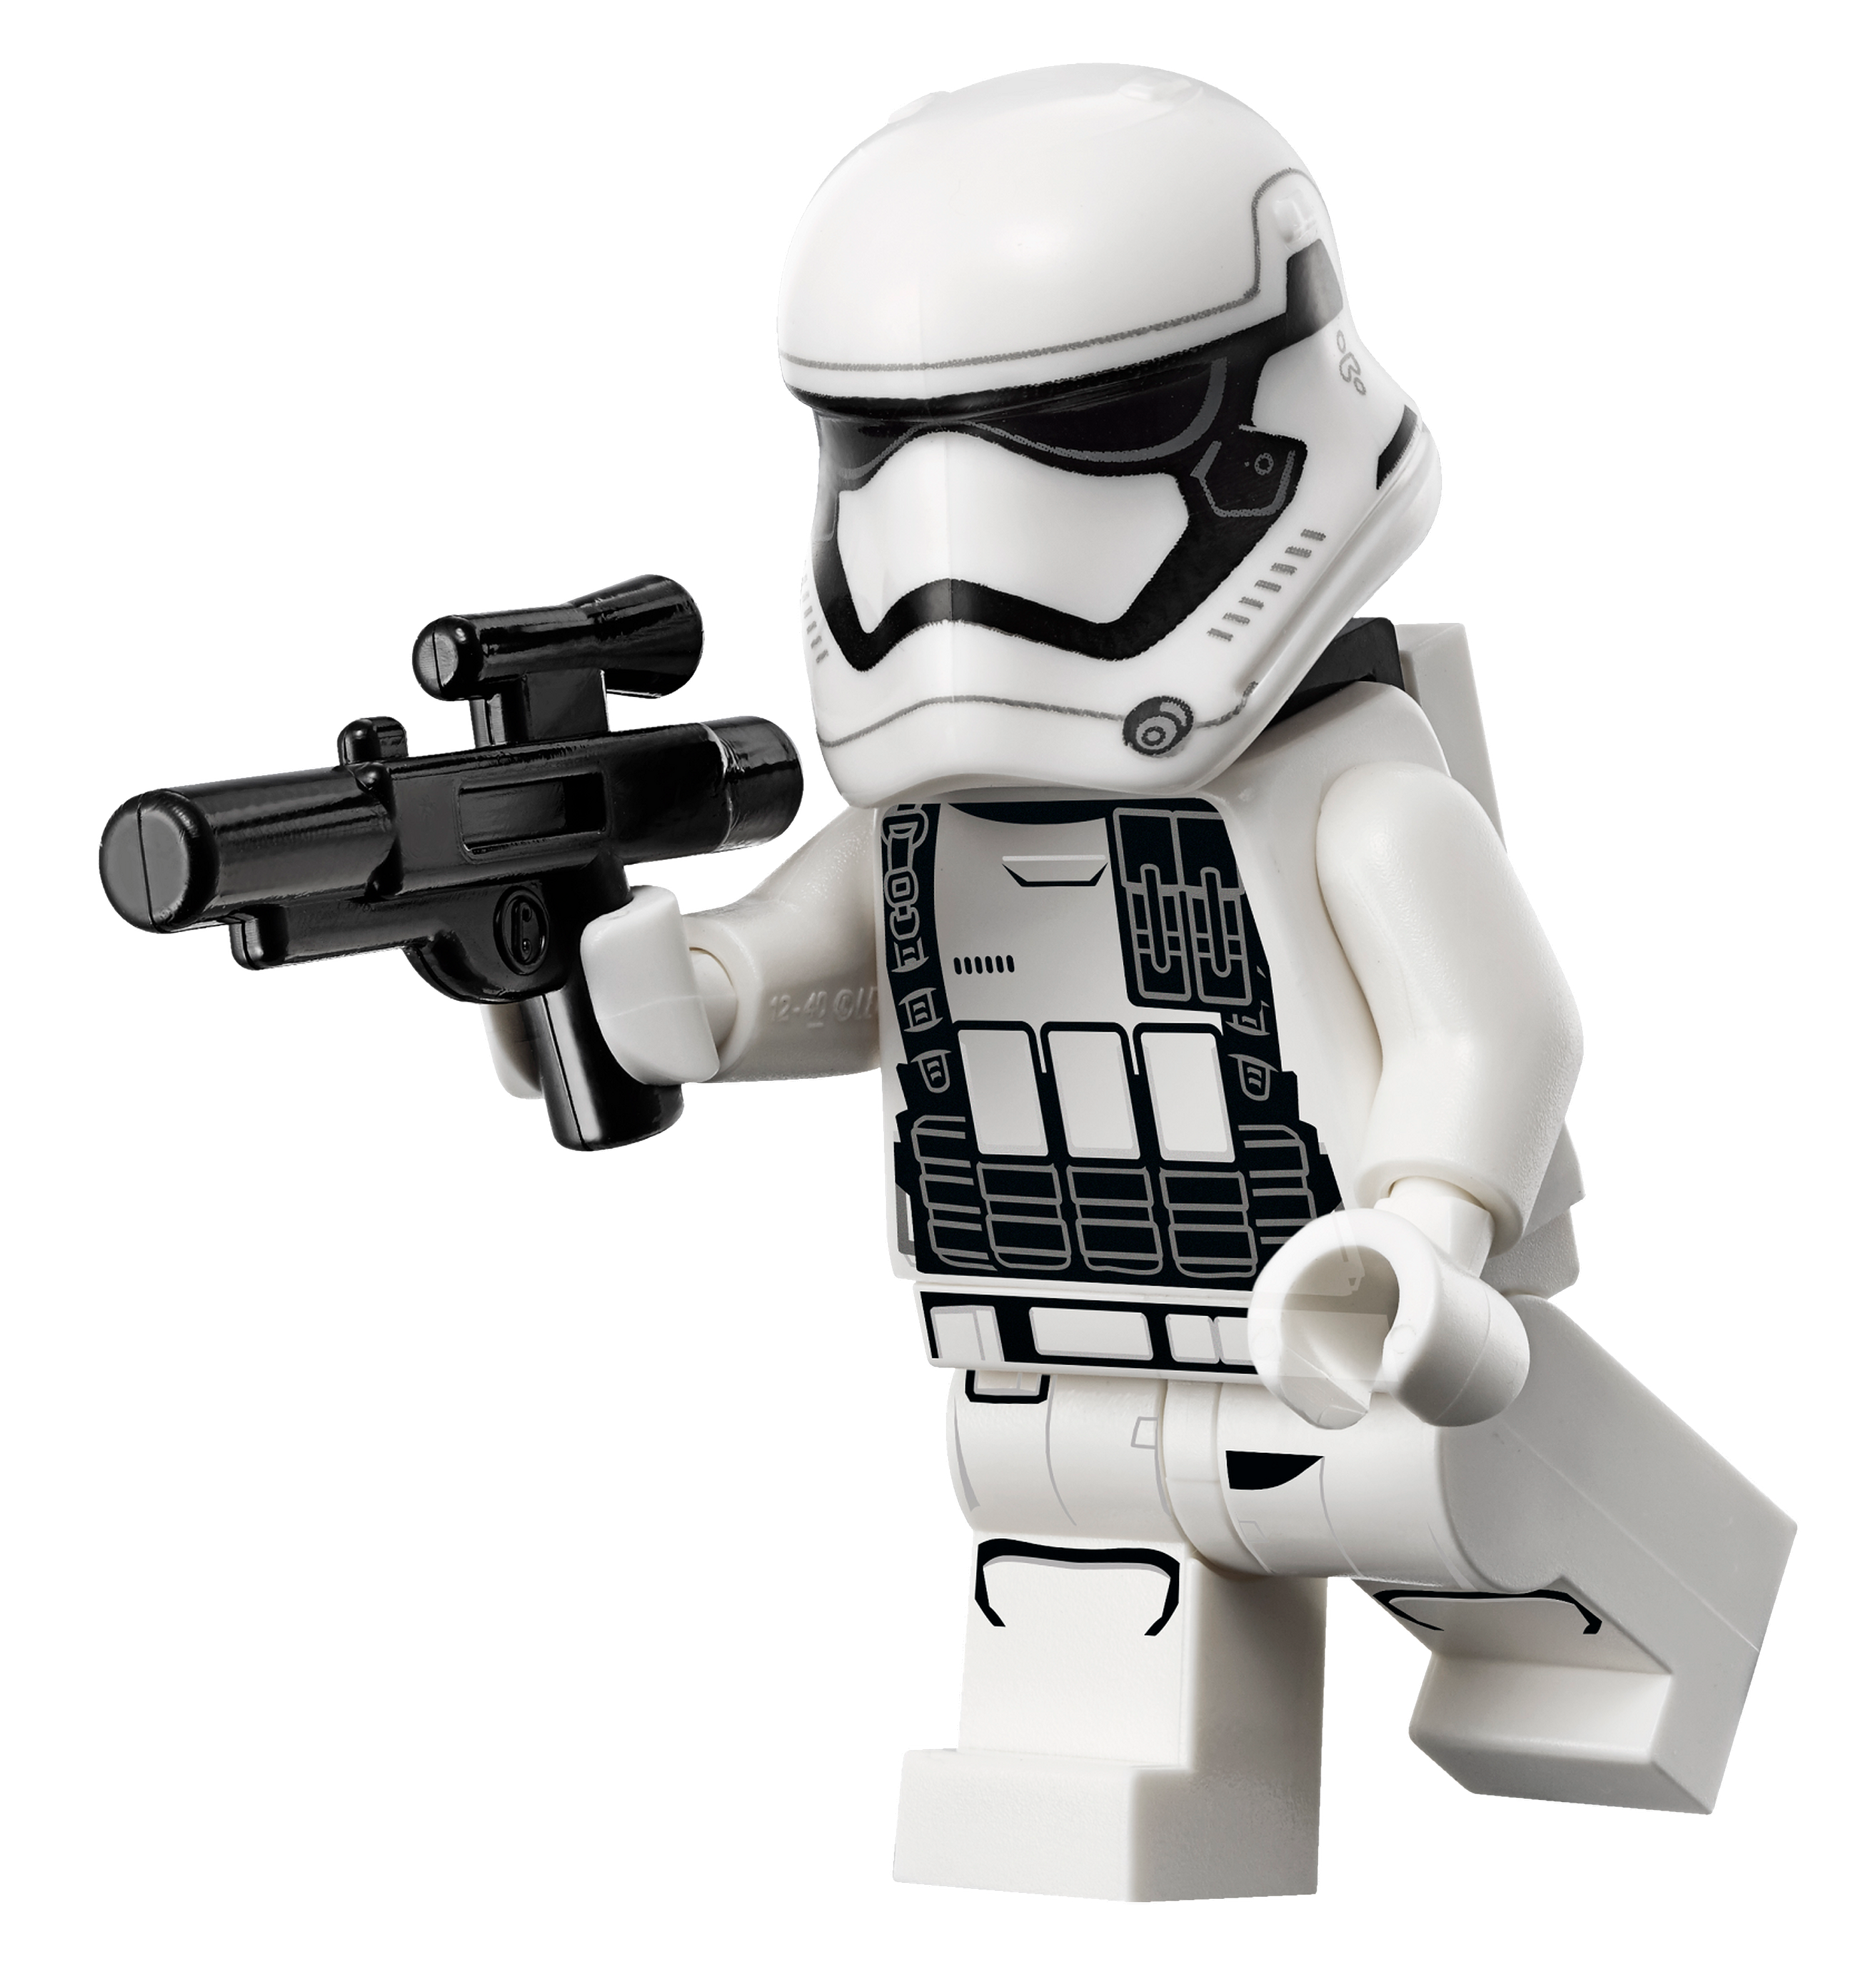 LEGO-Star-Wars-2016-May-the-4th-Exclusive-Stormtrooper-Minifigure ...